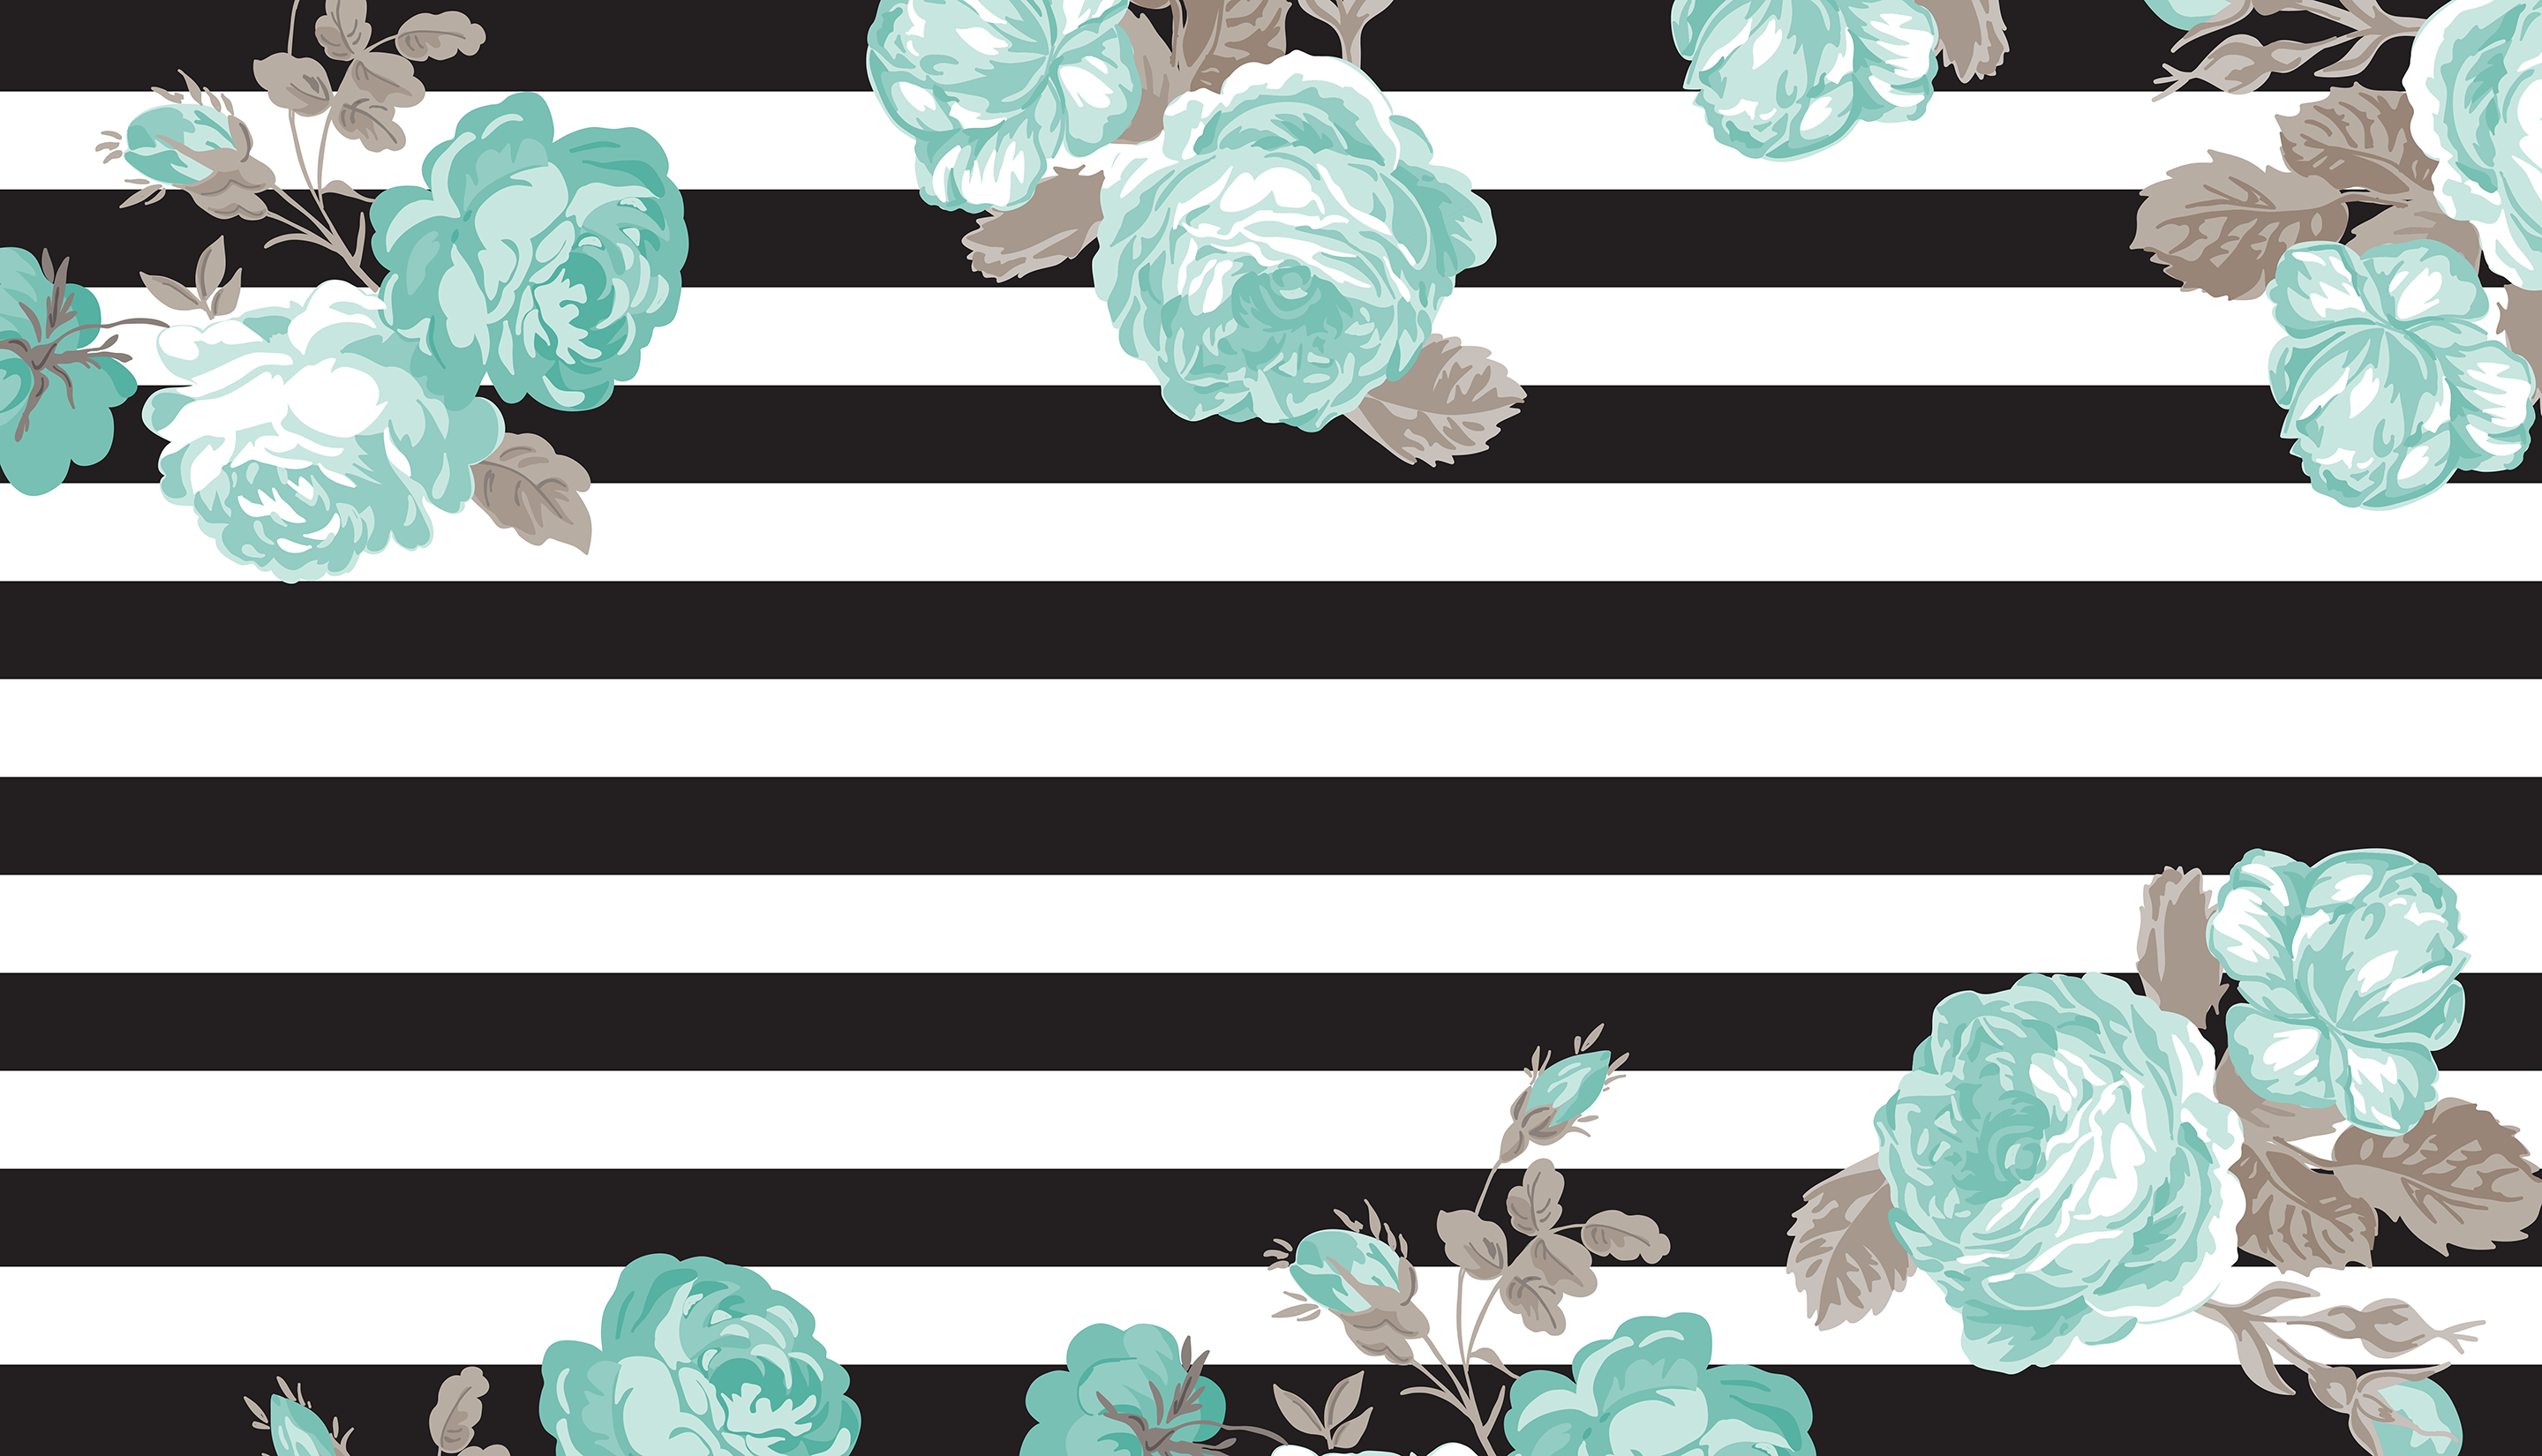 Betsy Black Stripe and Teal Floral Desktop Wallpaper